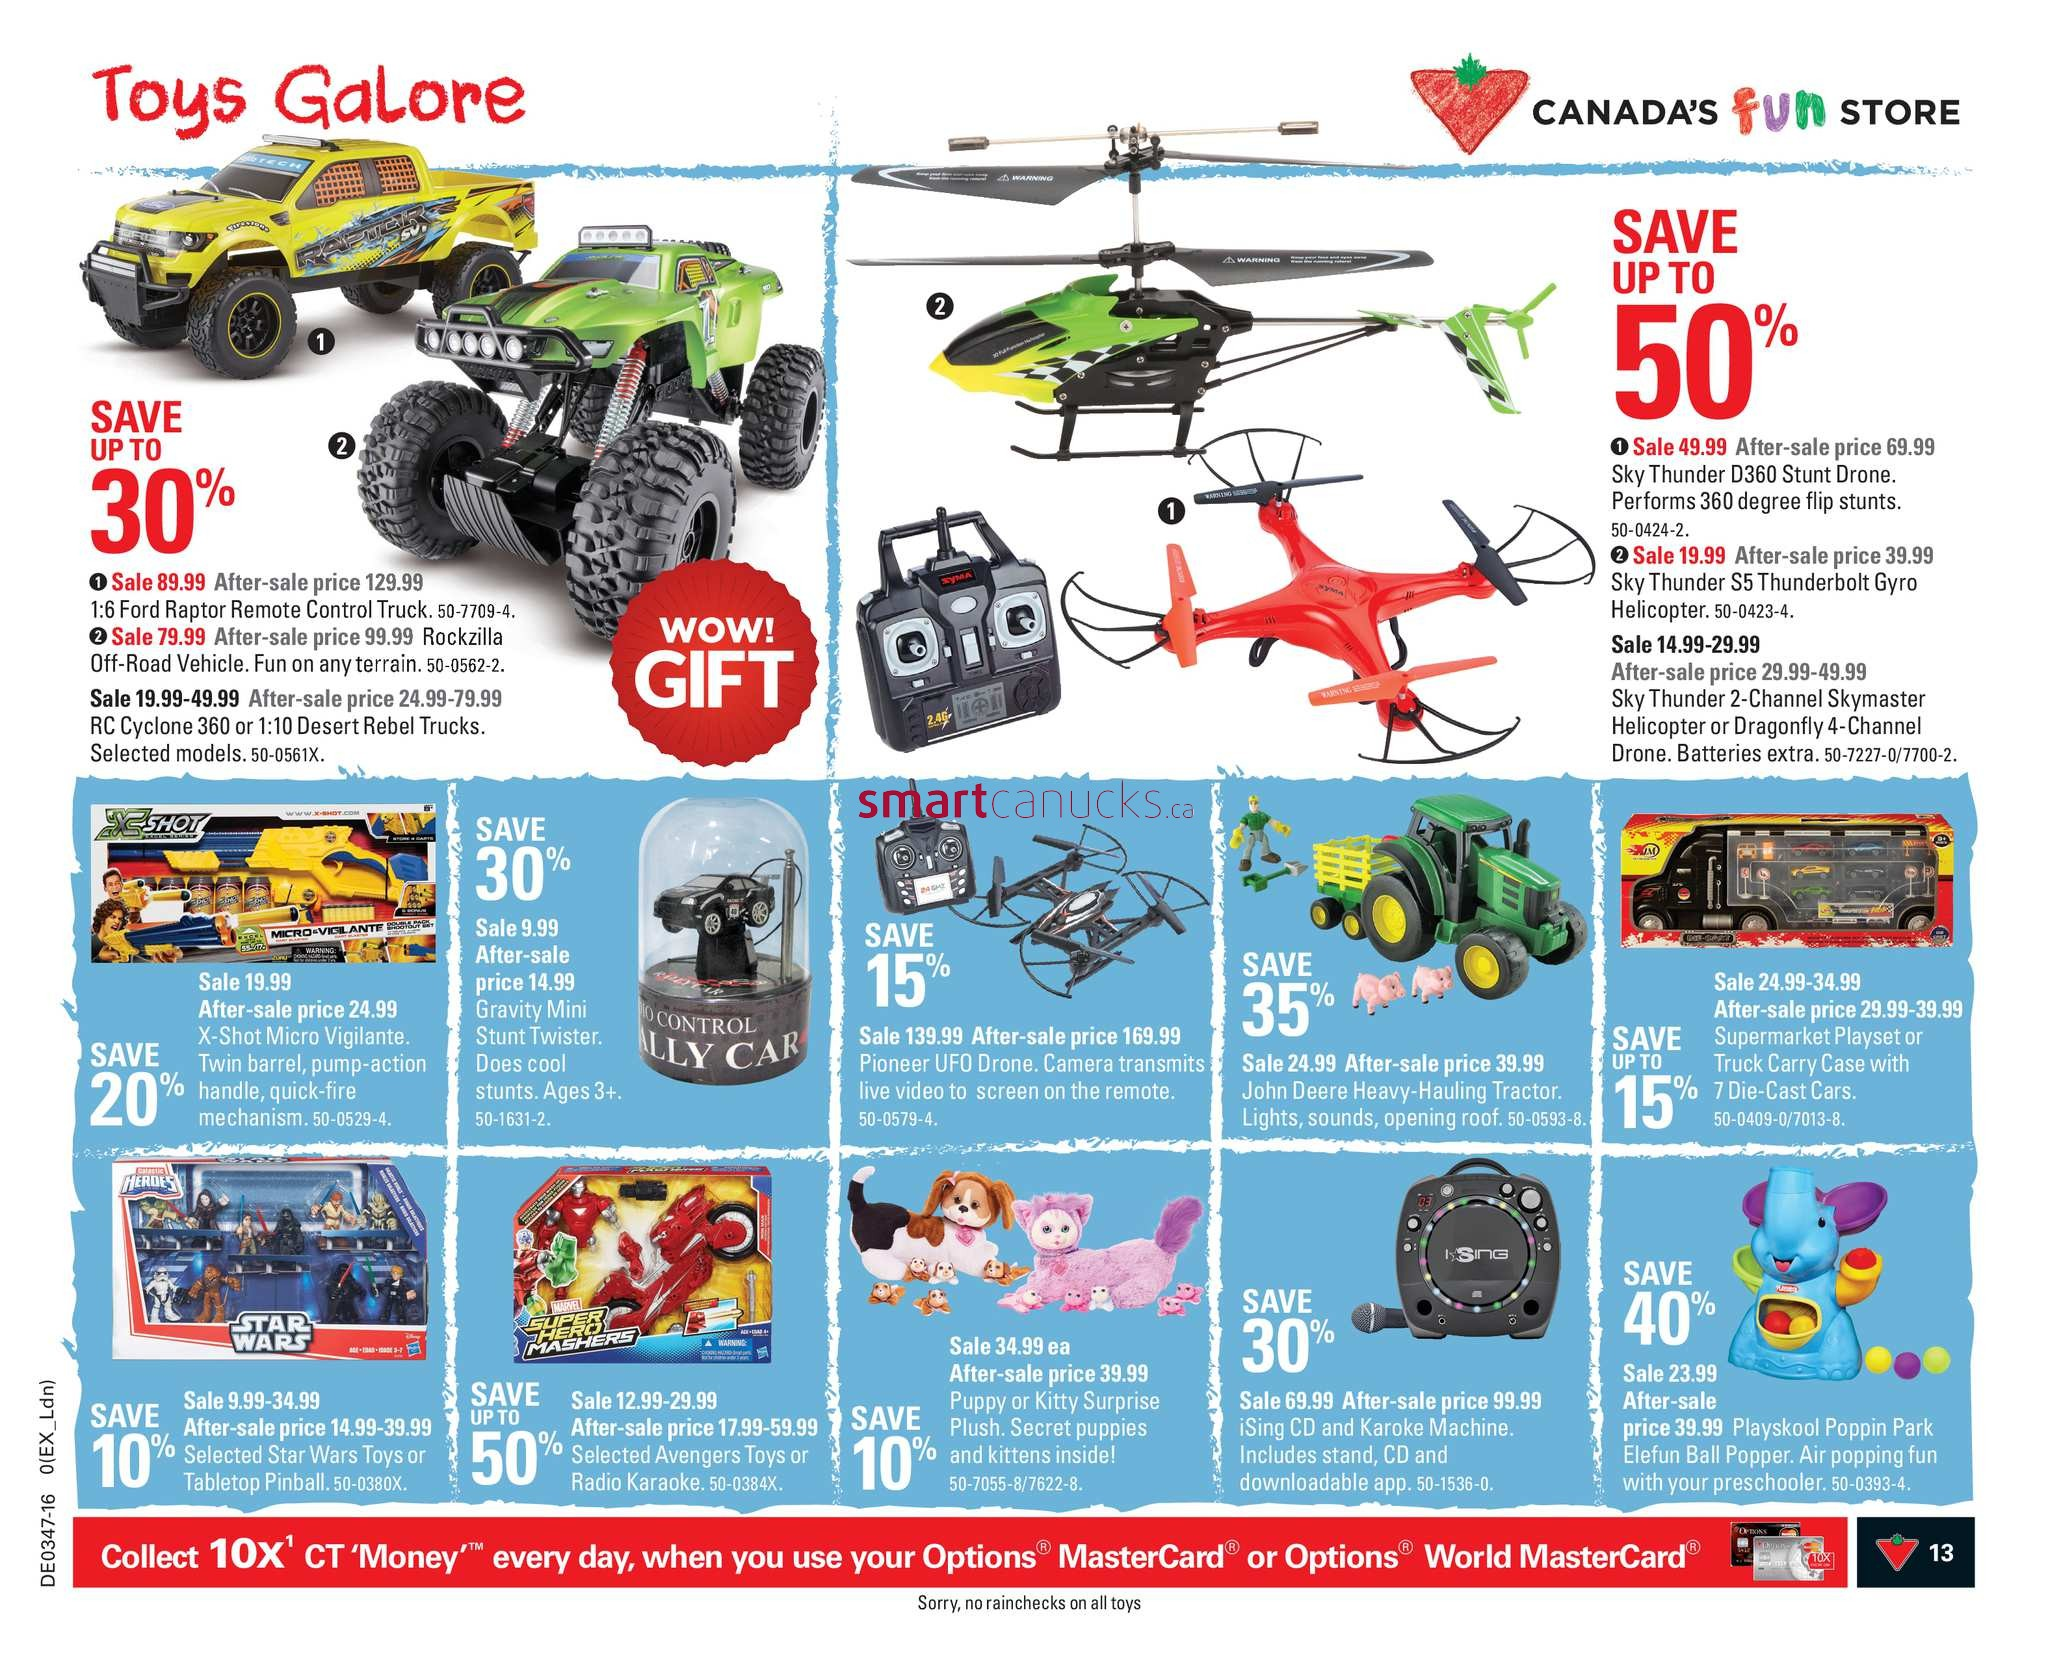 black friday remote control helicopter with 14 on 14 further Bushfires in victoria australi besides Rc Car Birthday in addition Search PERMIT 20POSTING 20BOX together with Mountain Dew.